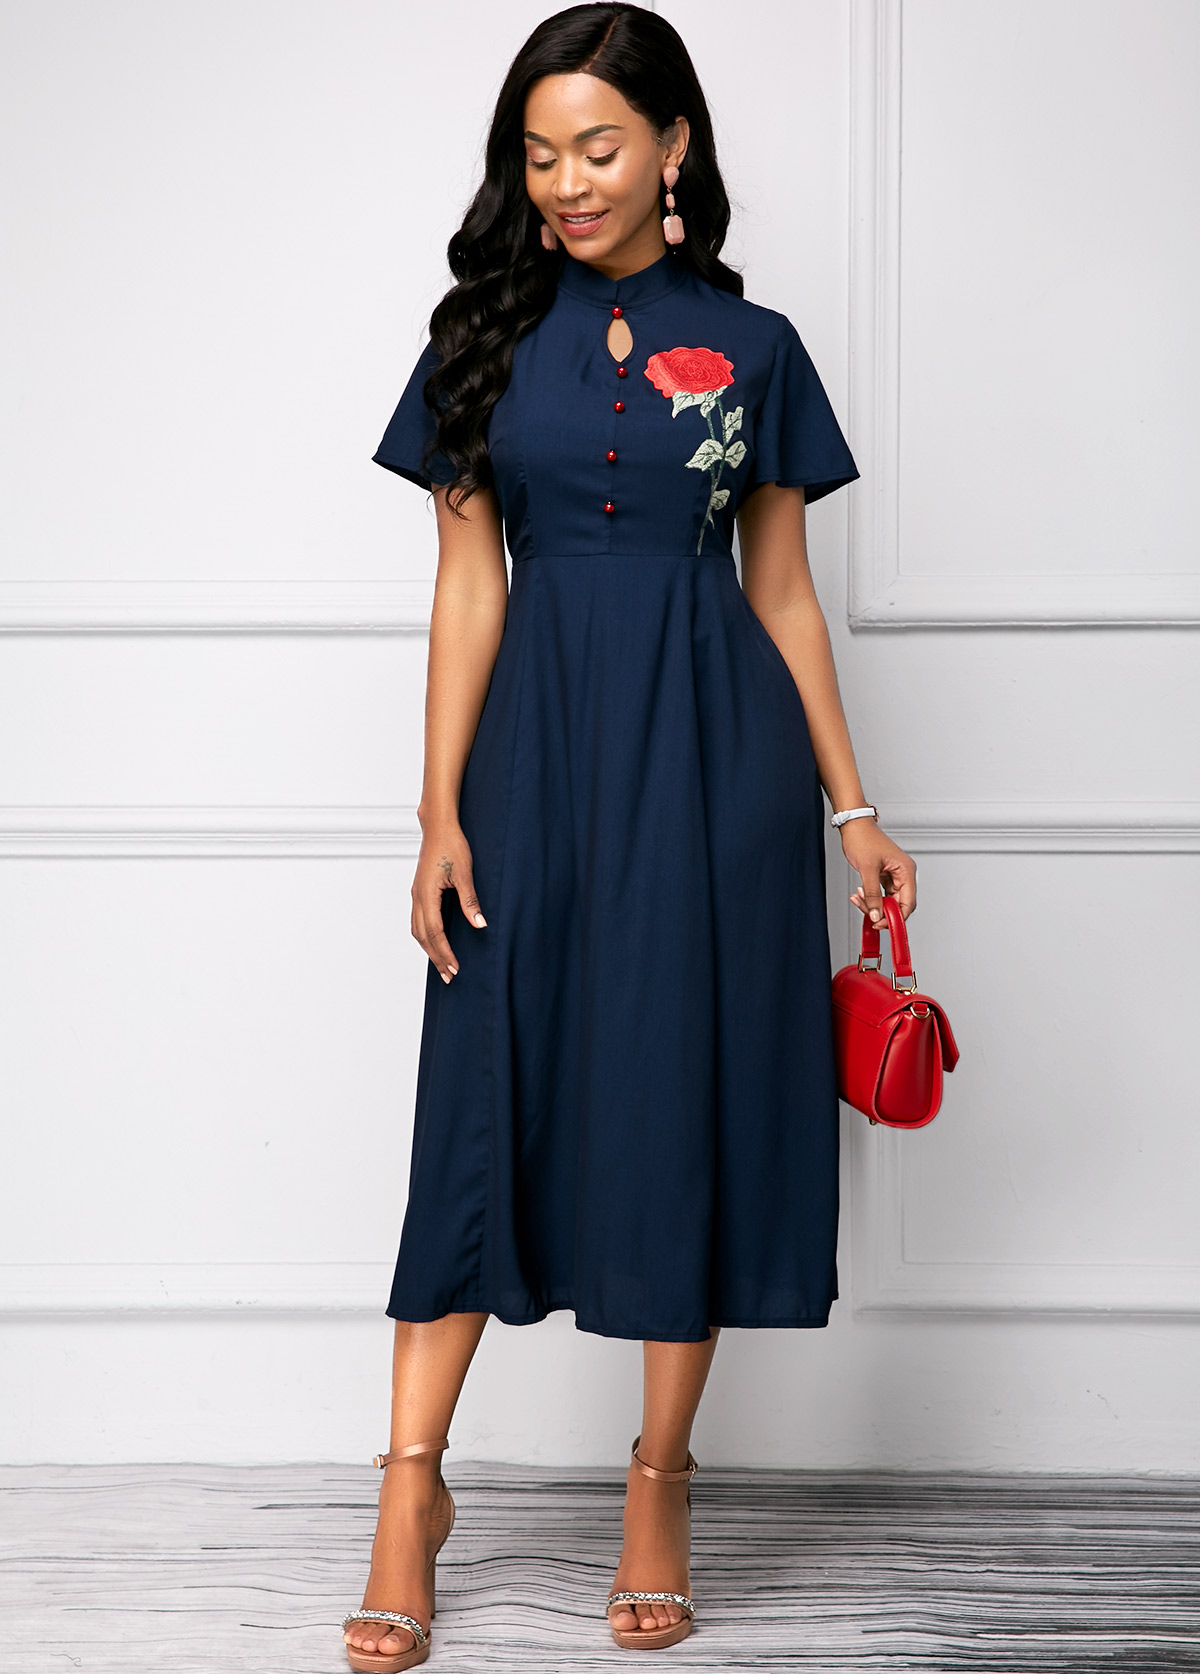 Flower Print Navy Blue Mandarin Collar Short Sleeve Dress